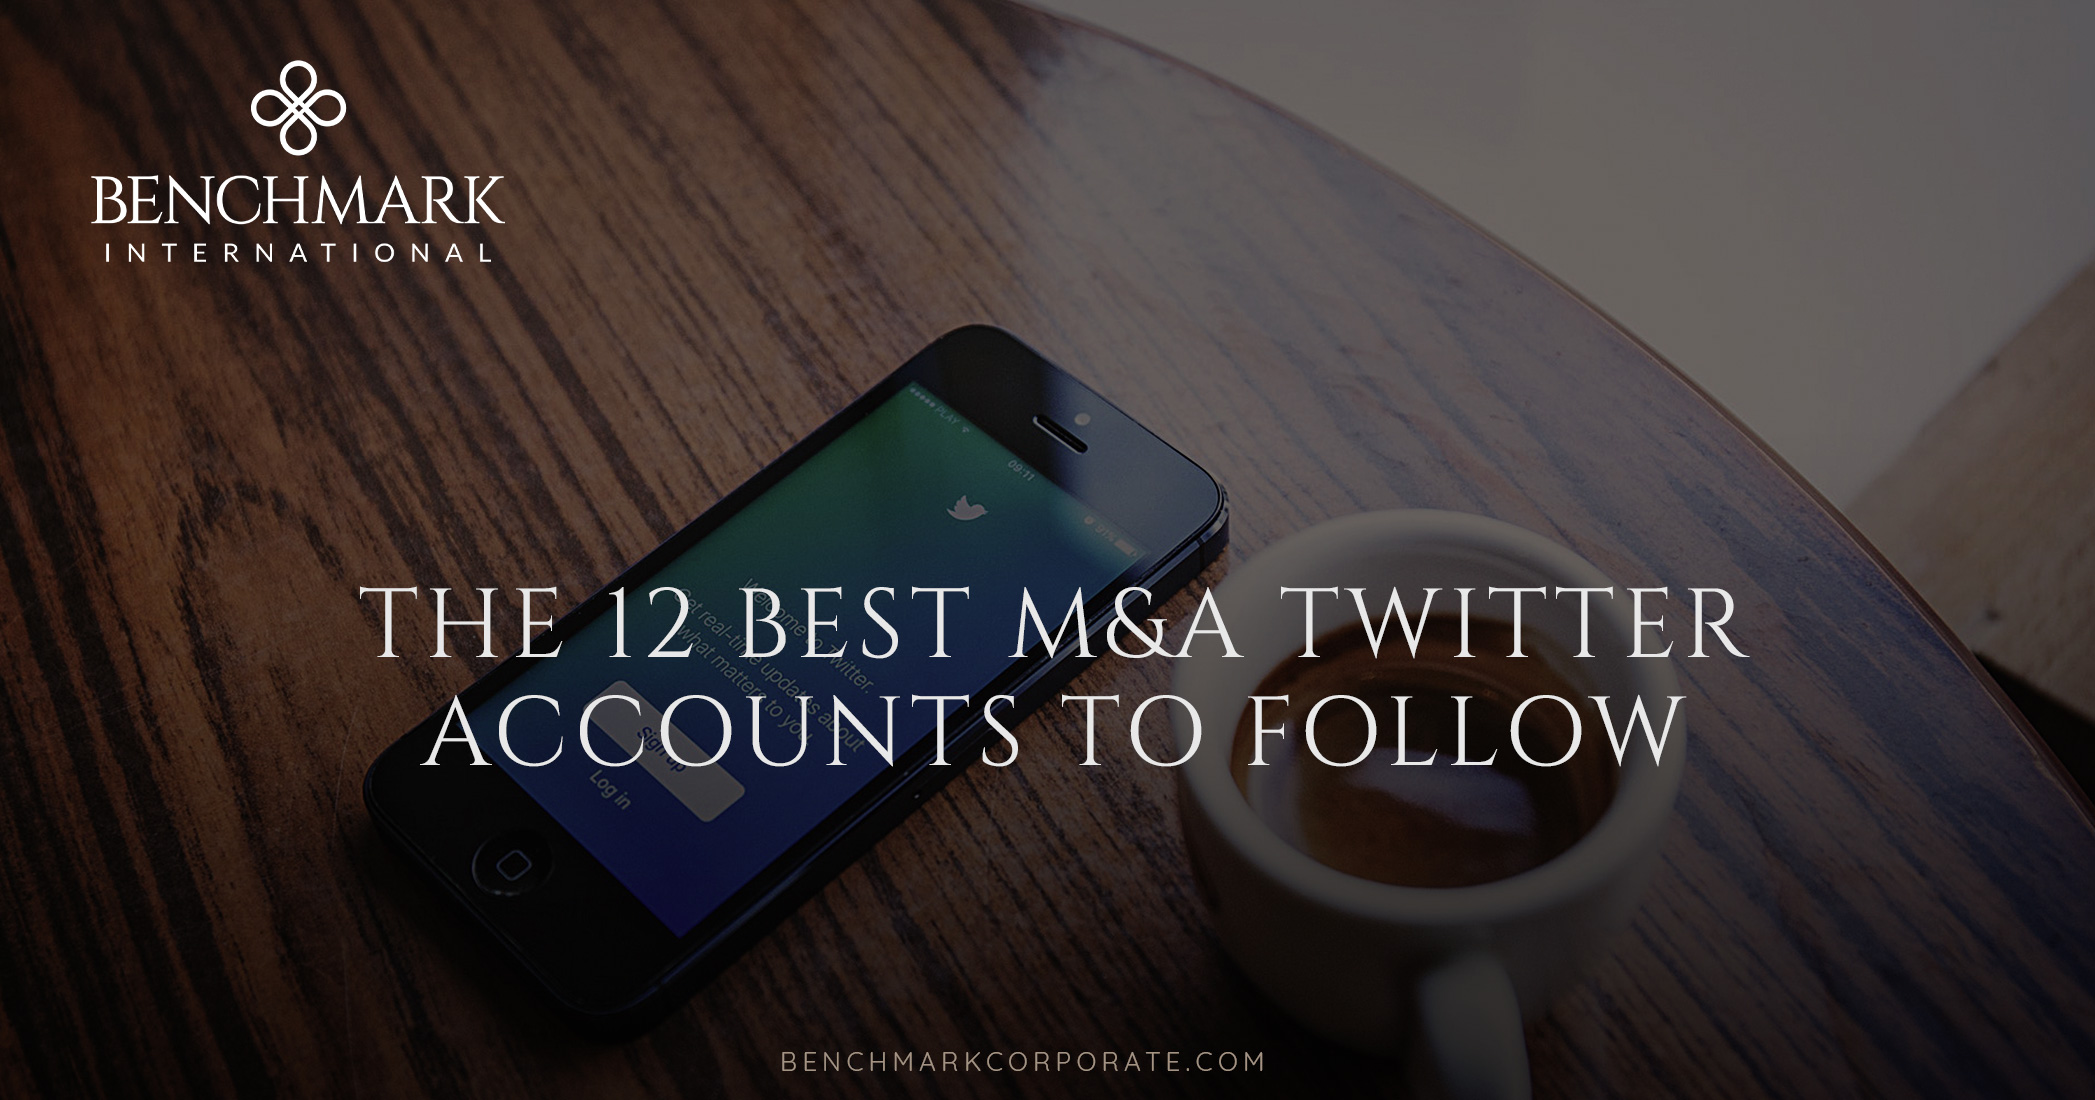 The 12 Best M&A Twitter Accounts To Follow